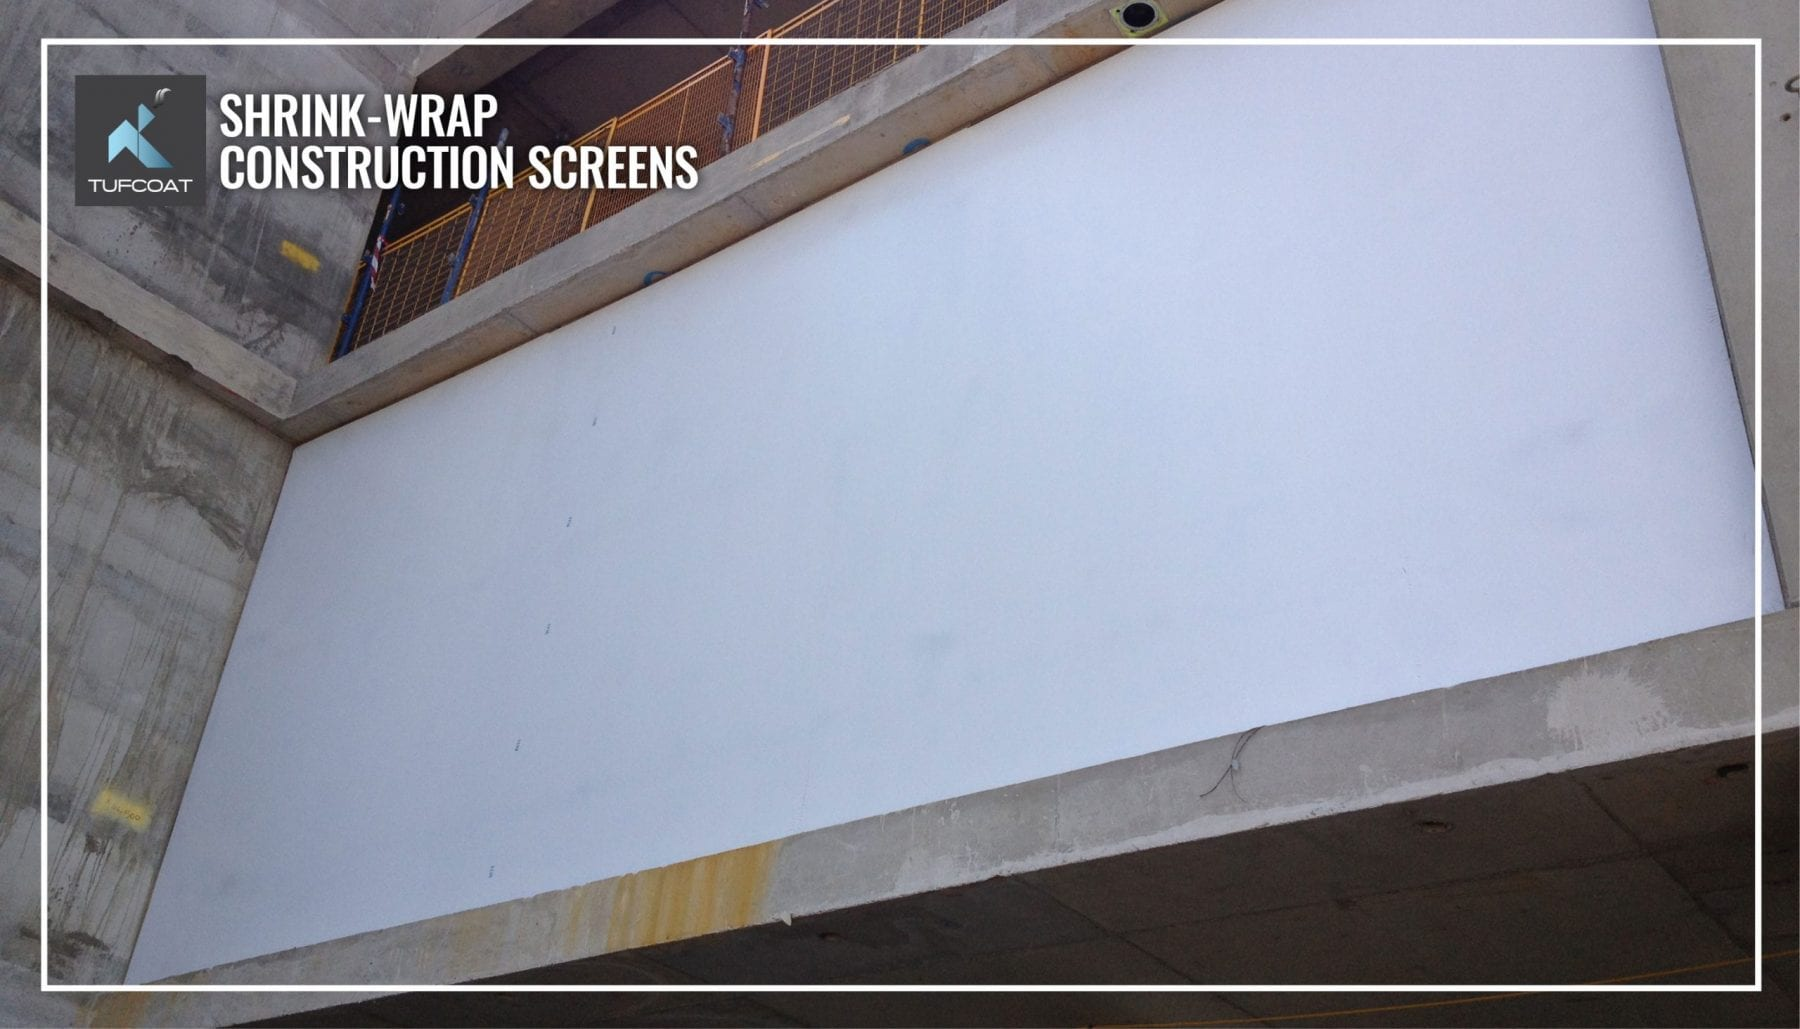 Shrink-wrap screen fixed to concrete building to weather proof during fit out